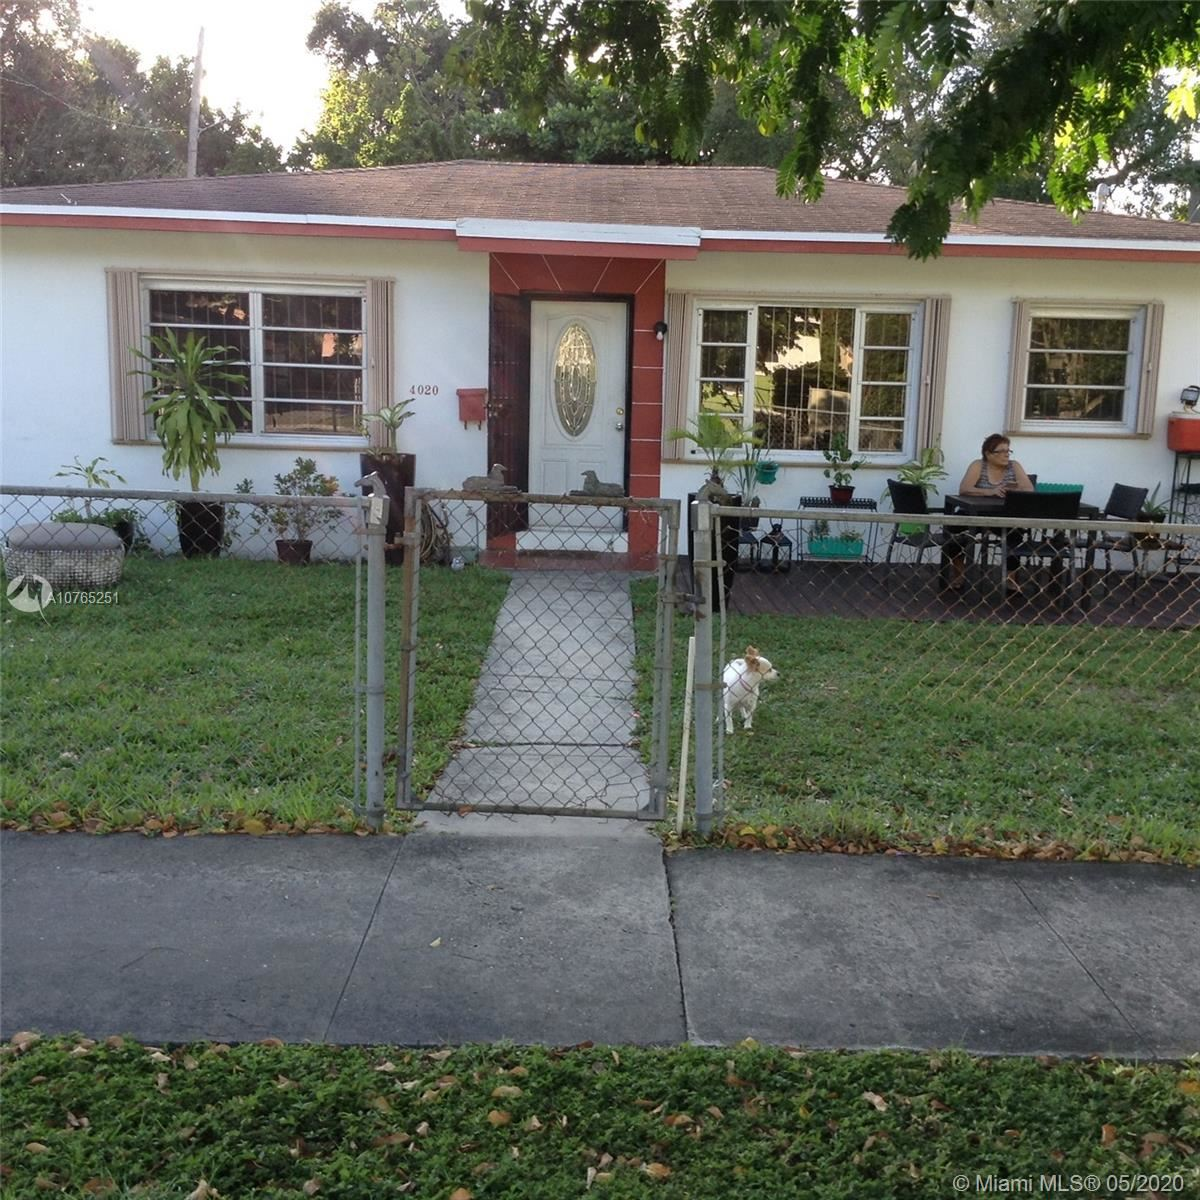 4020 NW 1st Ave, Miami, FL 33127 - MLS#: A10765251